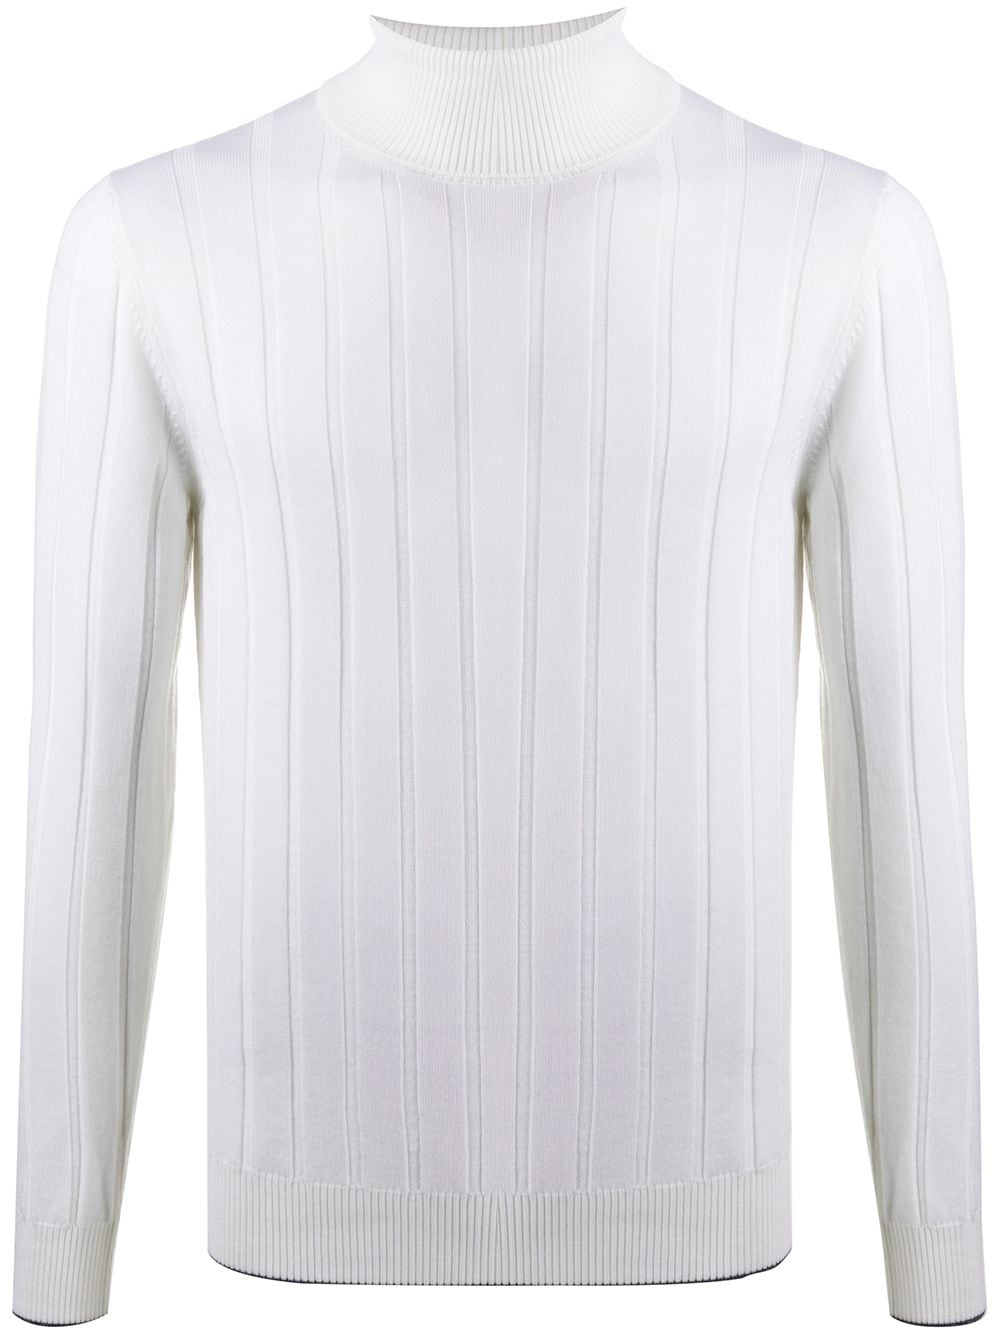 Ivory wool ribbed-knit roll neck jumper  ELEVENTY |  | B71MAGB21-MAG0B04300-15